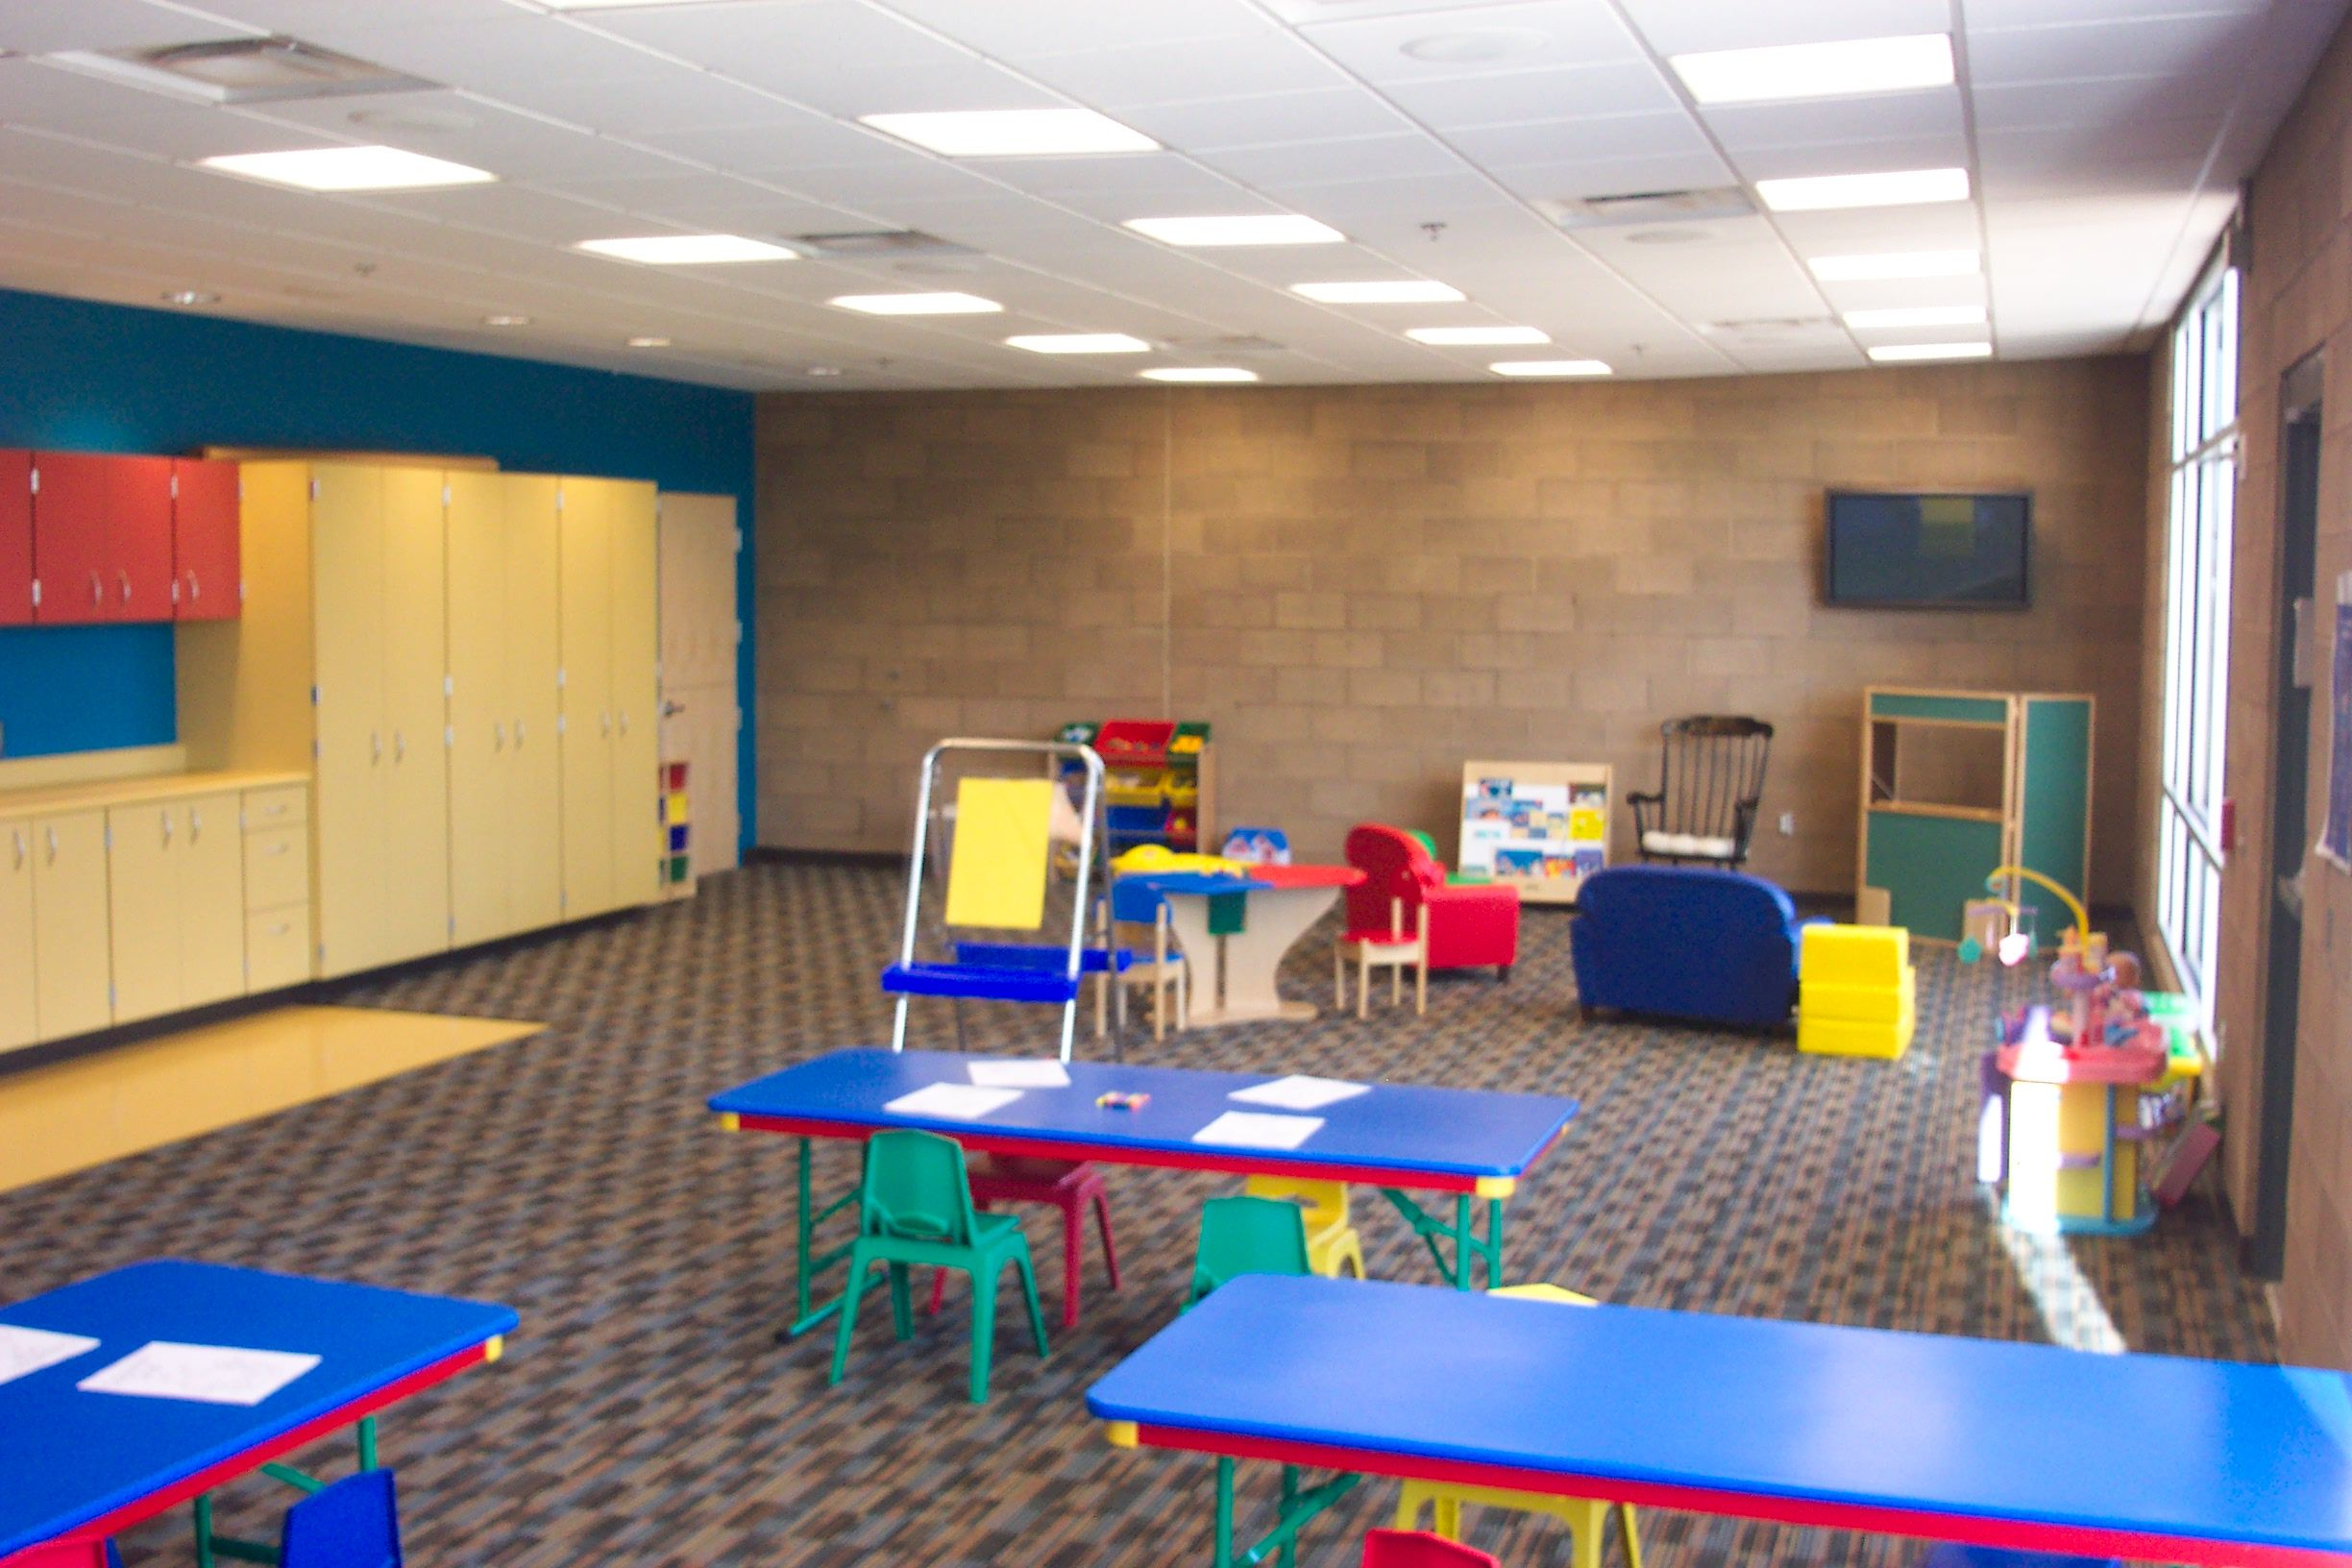 In Home Day Care DAY CARE ACTIVITIES Pinterest Daycare Ideas - Home daycare design ideas